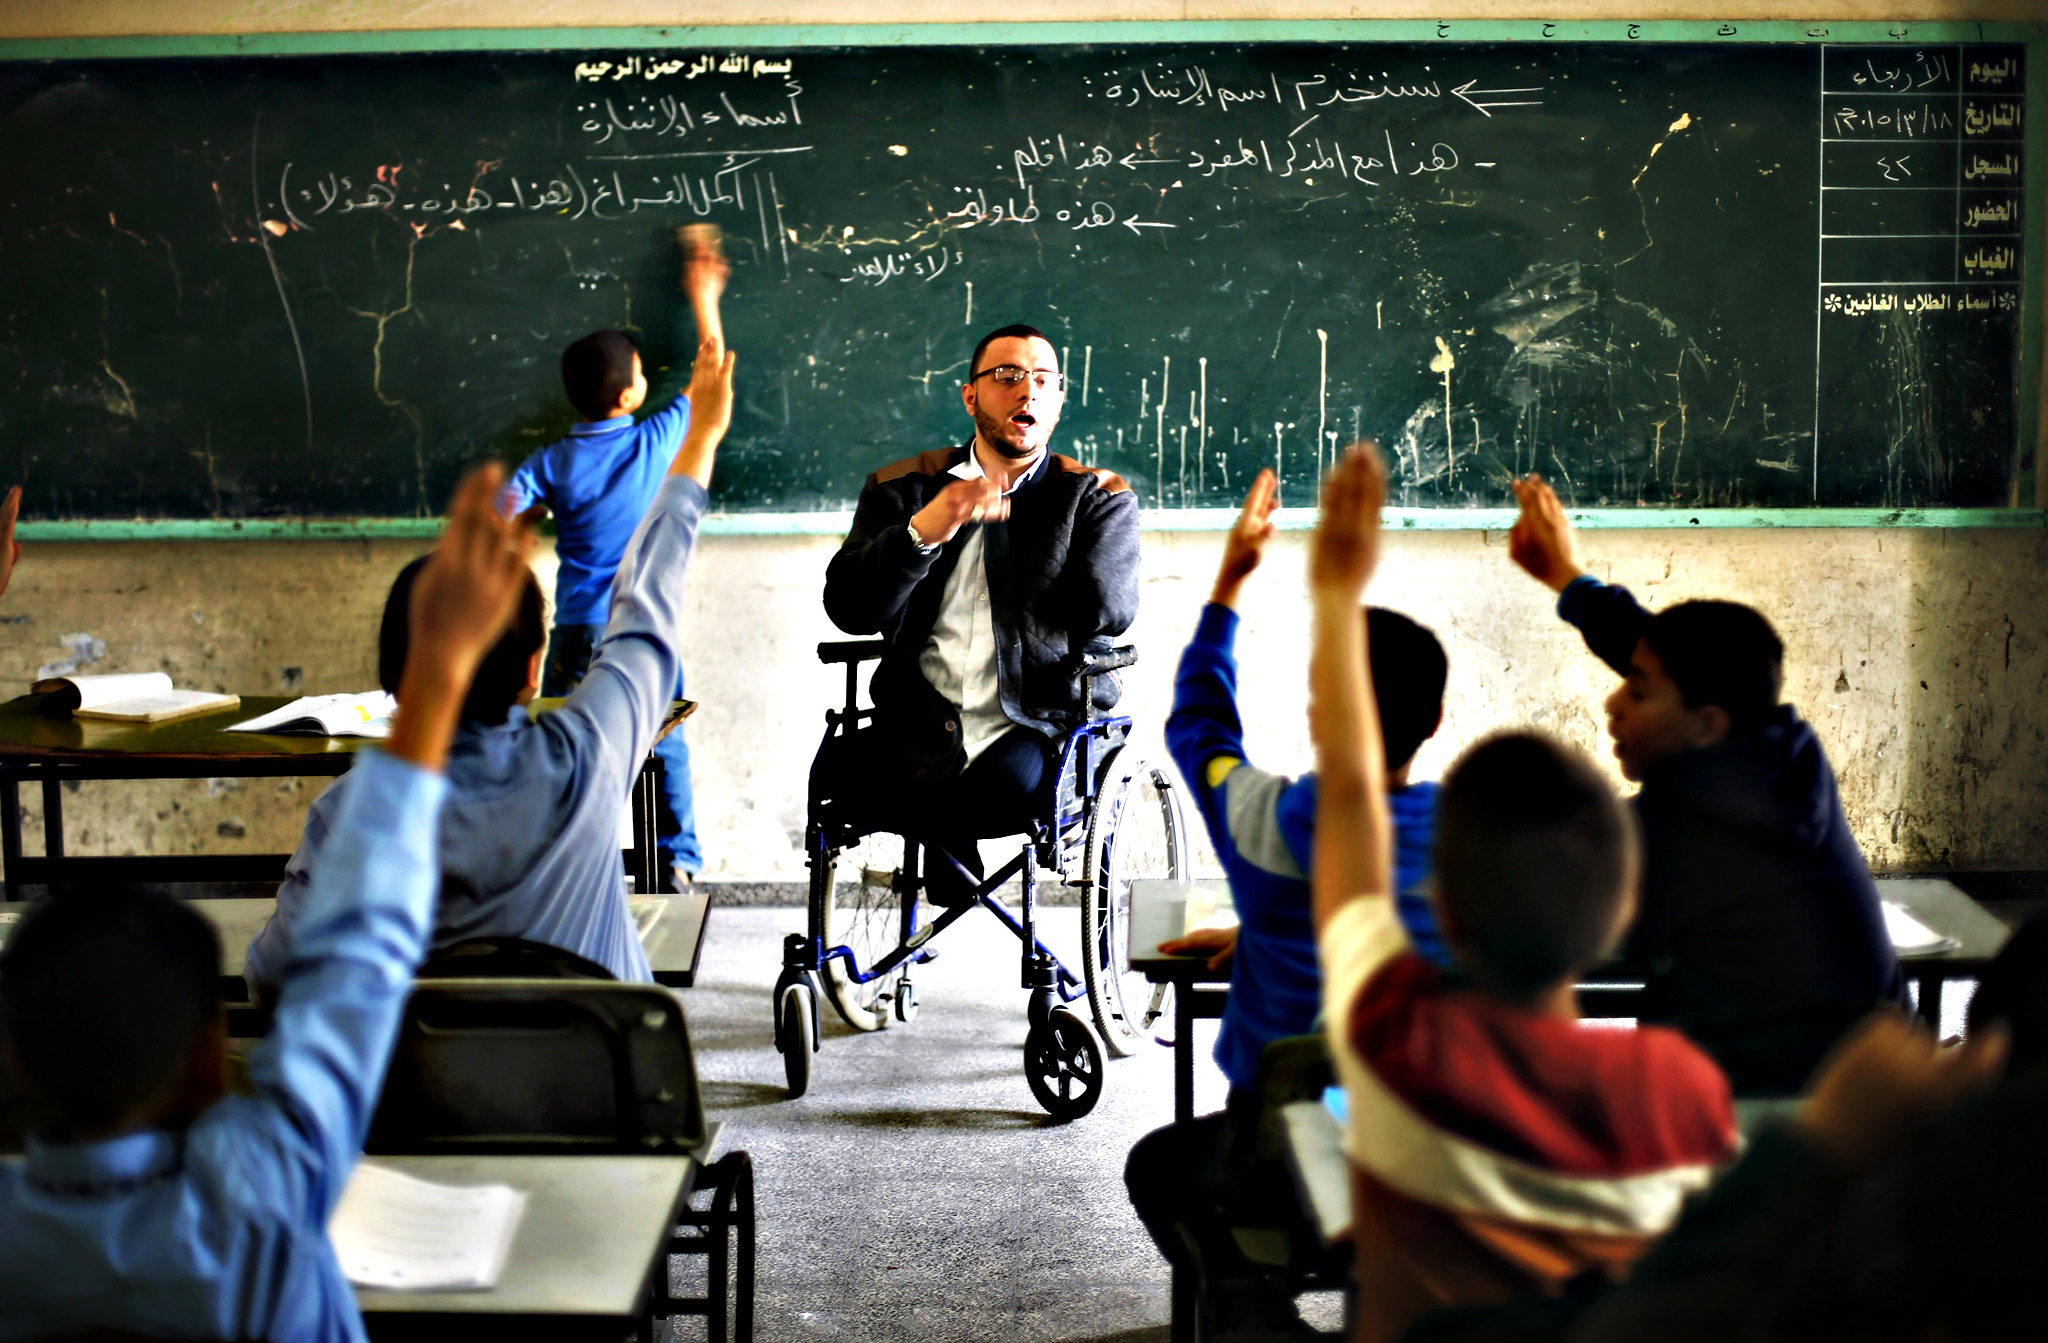 Wheelchair-bound Palestinian student teacher Ahmed al-Sawaferi, 25, who said that he lost his both legs and his left arm in an Israeli air strike in 2008, gives a class at an elementary school in Gaza City...Wheelchair-bound Palestinian student teacher Ahmed al-Sawaferi, 25, who said that he lost his both legs and his left arm in an Israeli air strike in 2008, gives a class at an elementary school in Gaza City March 18, 2015. Al-Sawaferi, a father for two children, is due to hold a B.A in Islamic studies after finishing his last university semester in June this year